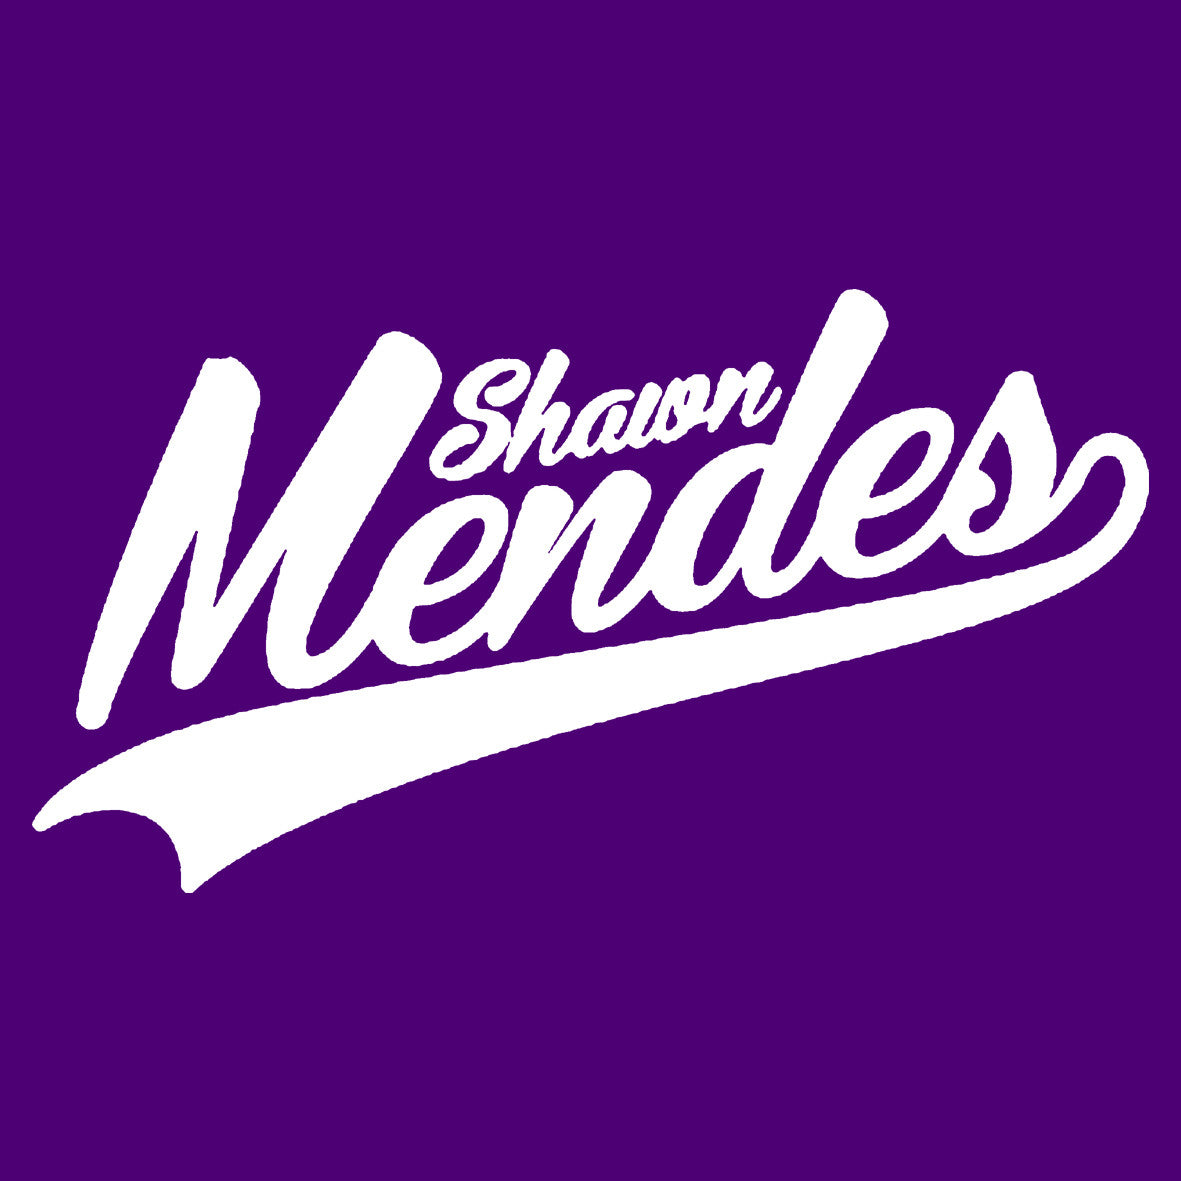 Shawn Mendes 2 Central T Shirts